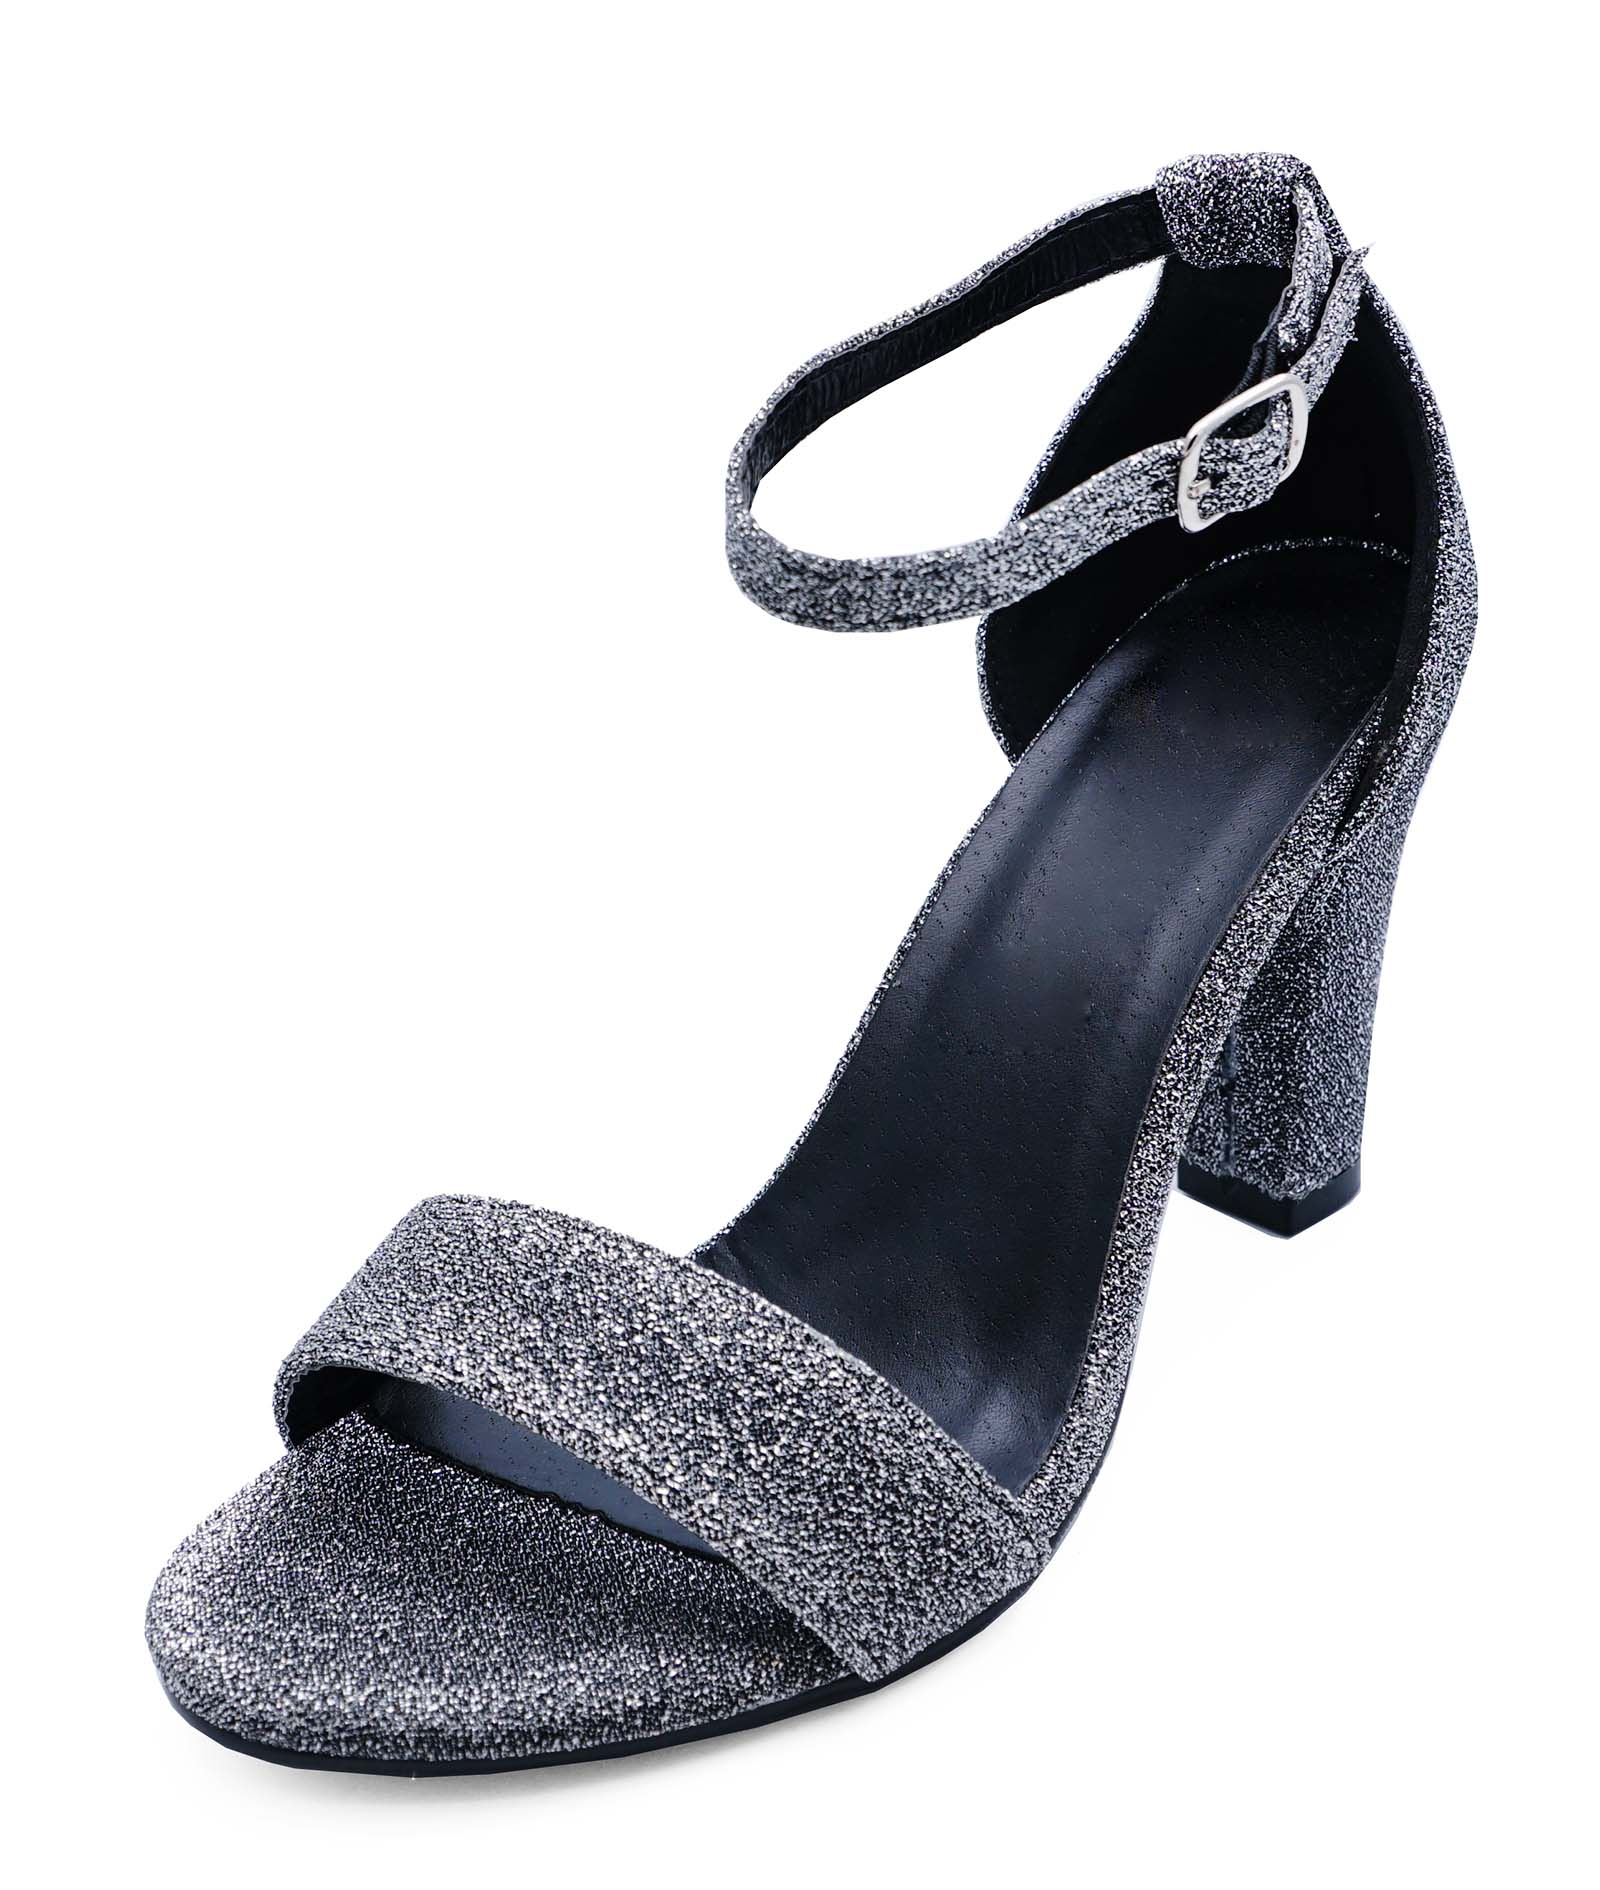 WOMENS SILVER WIDE FIT EEE OPEN-TOE PARTY WEDDING COMFY